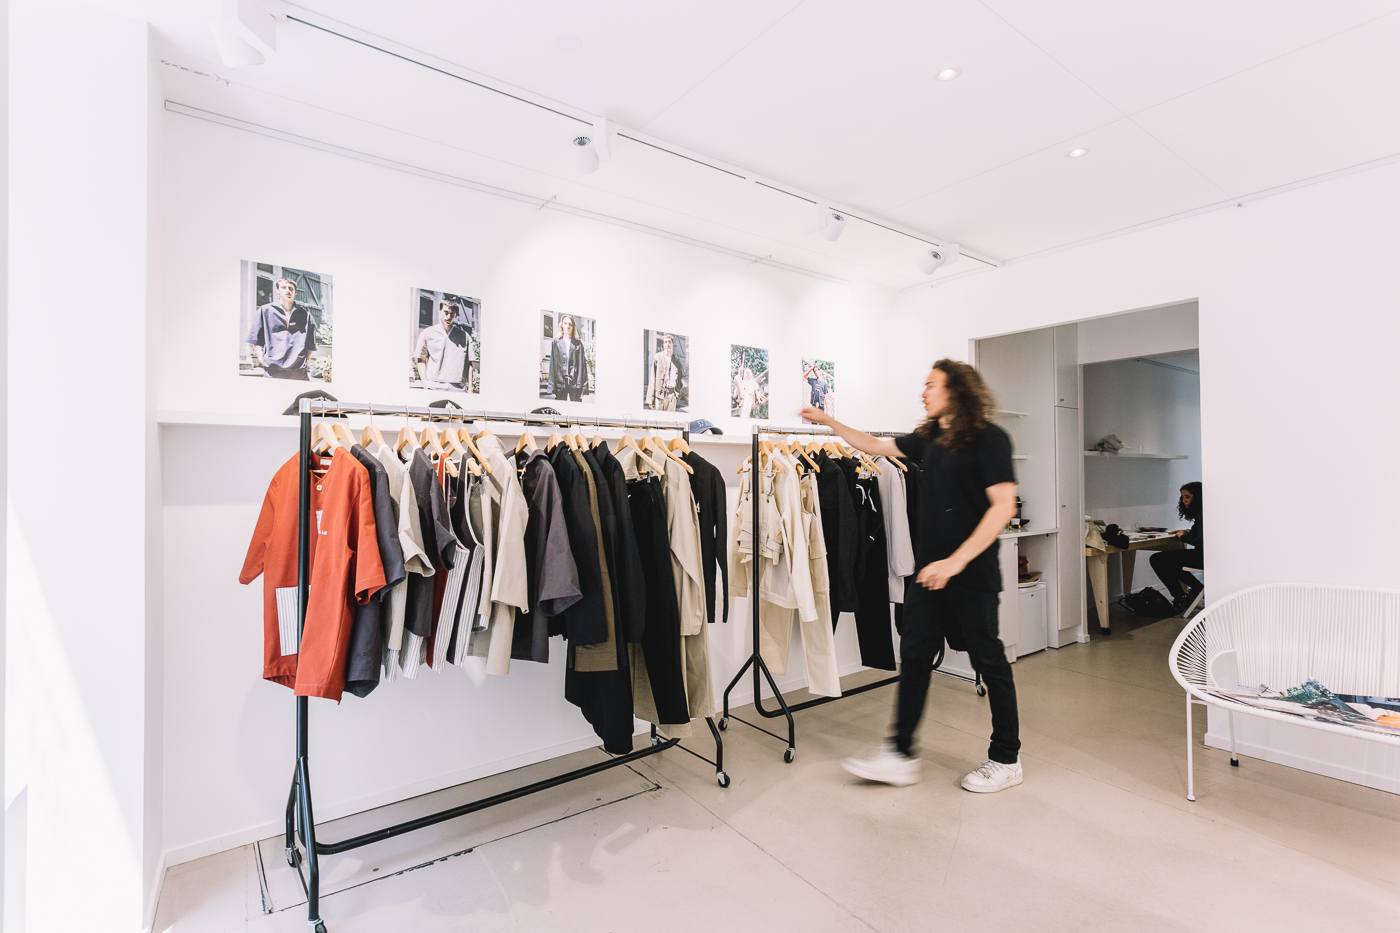 Photo du showroom de North Hill pendant la Fashion Week Hommme 2018